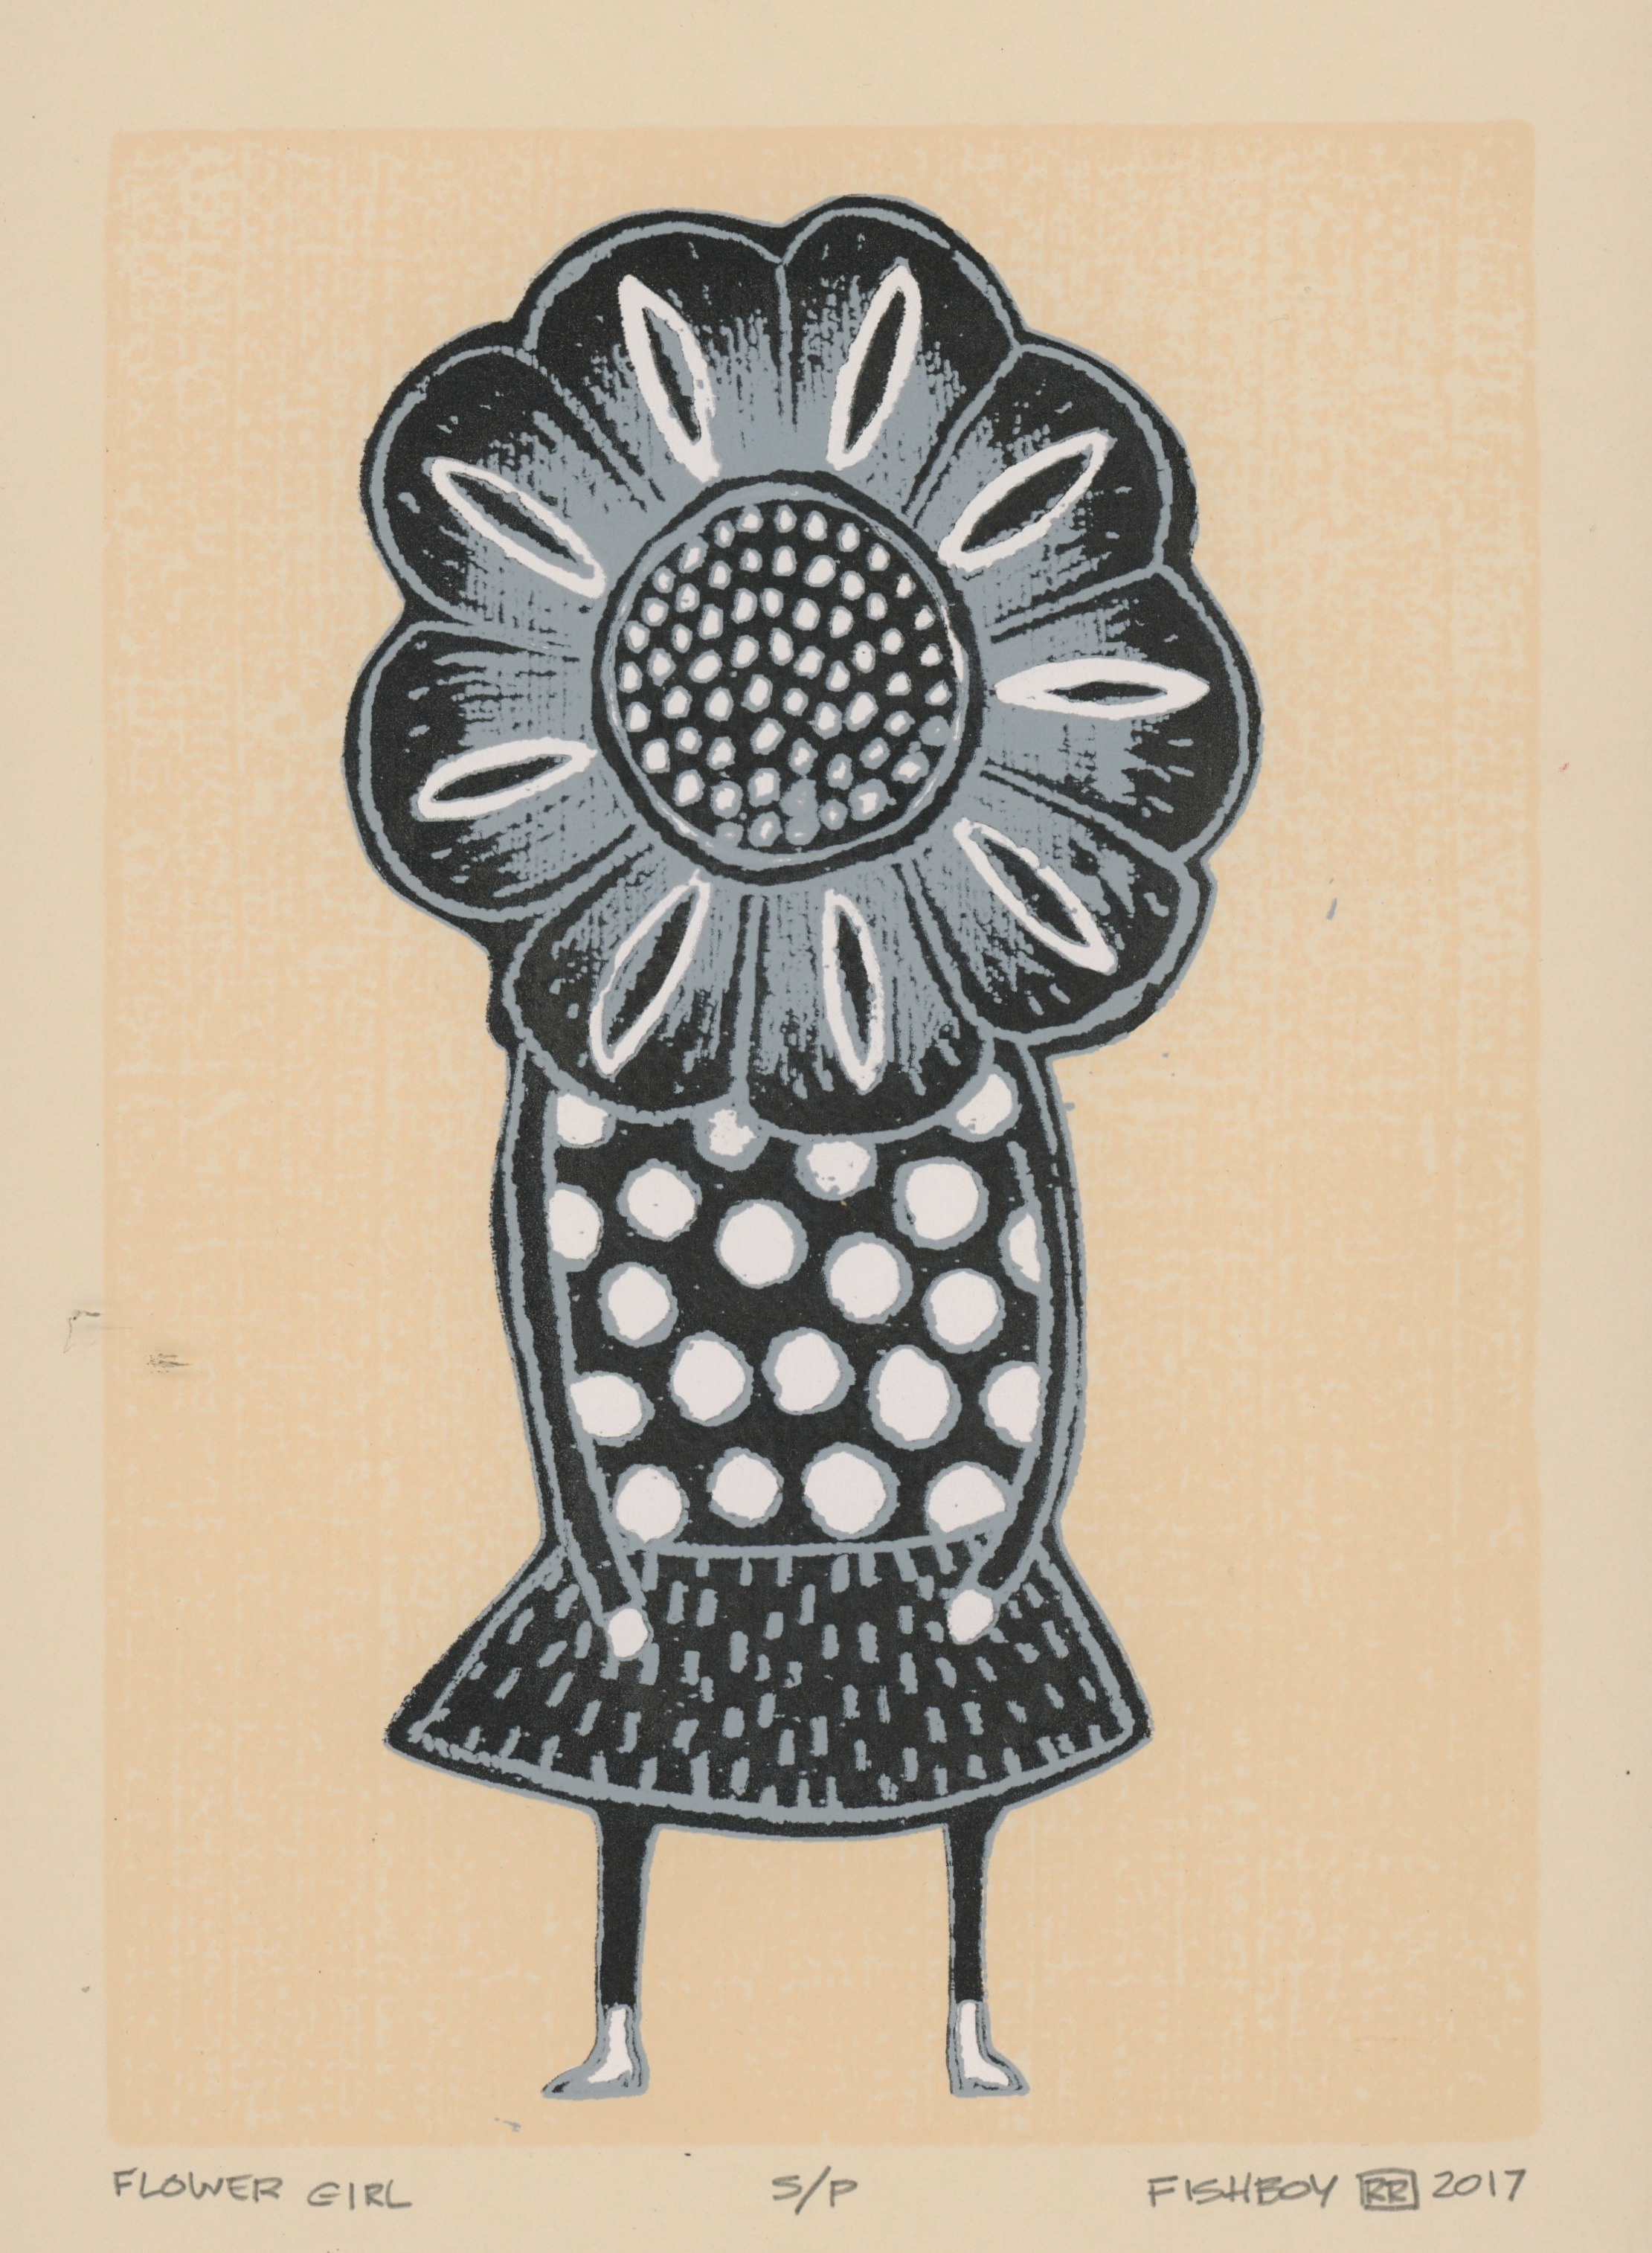 Flower Girl - A four color screen print on buff fabriano paper. This image is an adaptation of an acrylic Fishboy Painting. Proofs currently available. For more information on works by Fishboy, please visit his website.